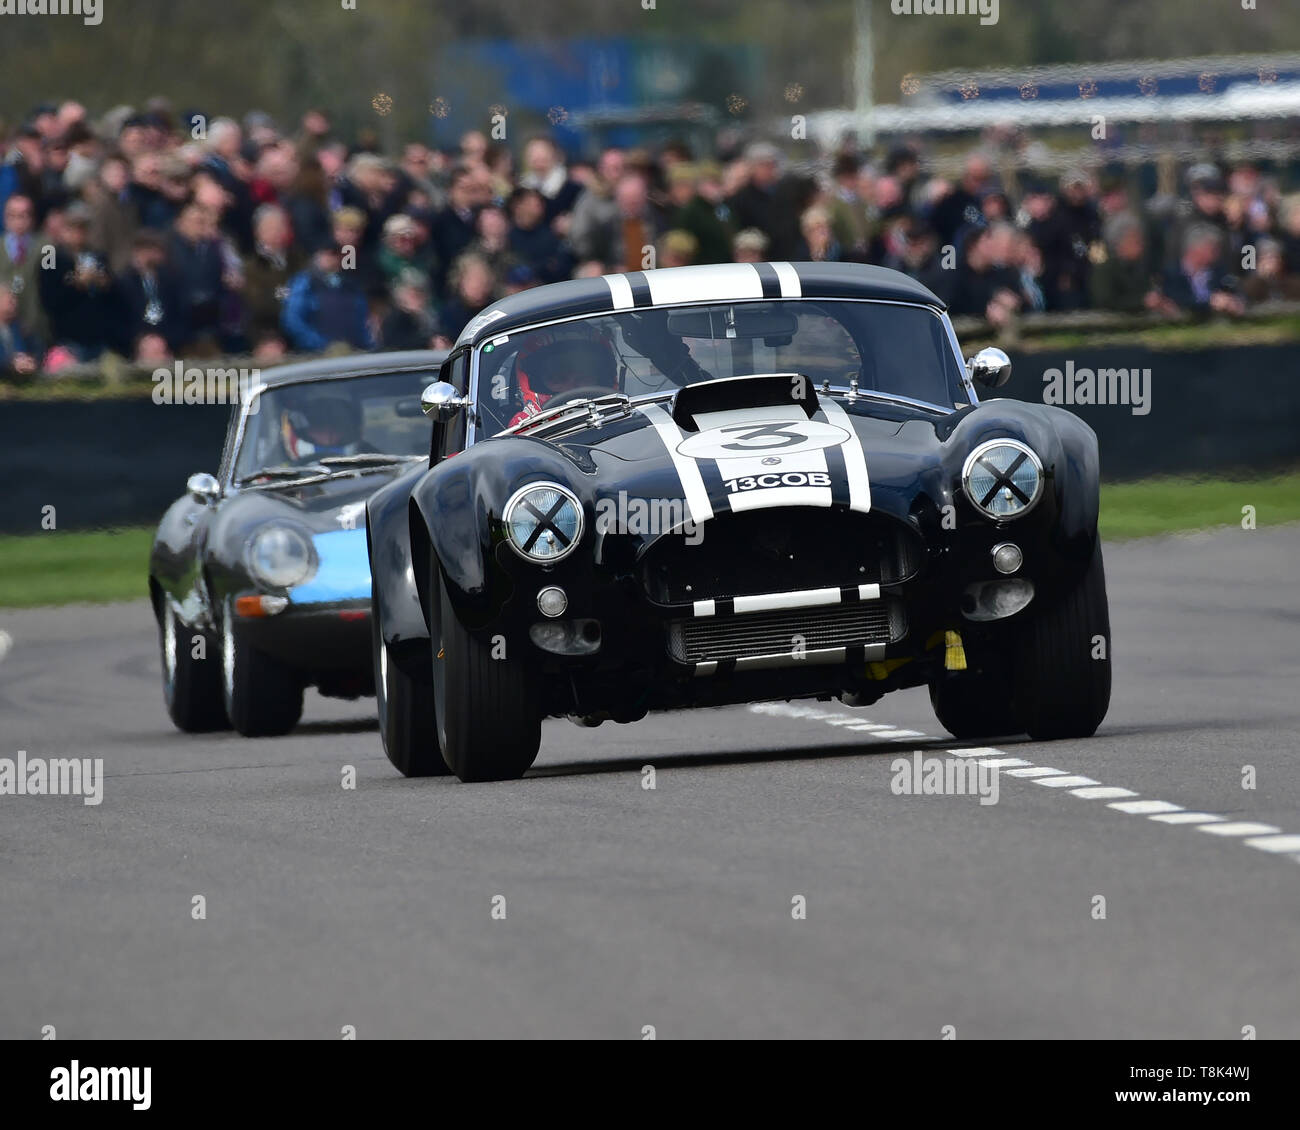 Anthony Reid, Nicolas Minassian, AC Cobra, Graham Hill Trophy, Closed cockpit GT cars, Prototype cars, Spirit of the RAC TT Races 1960-1964, 77th Memb - Stock Image